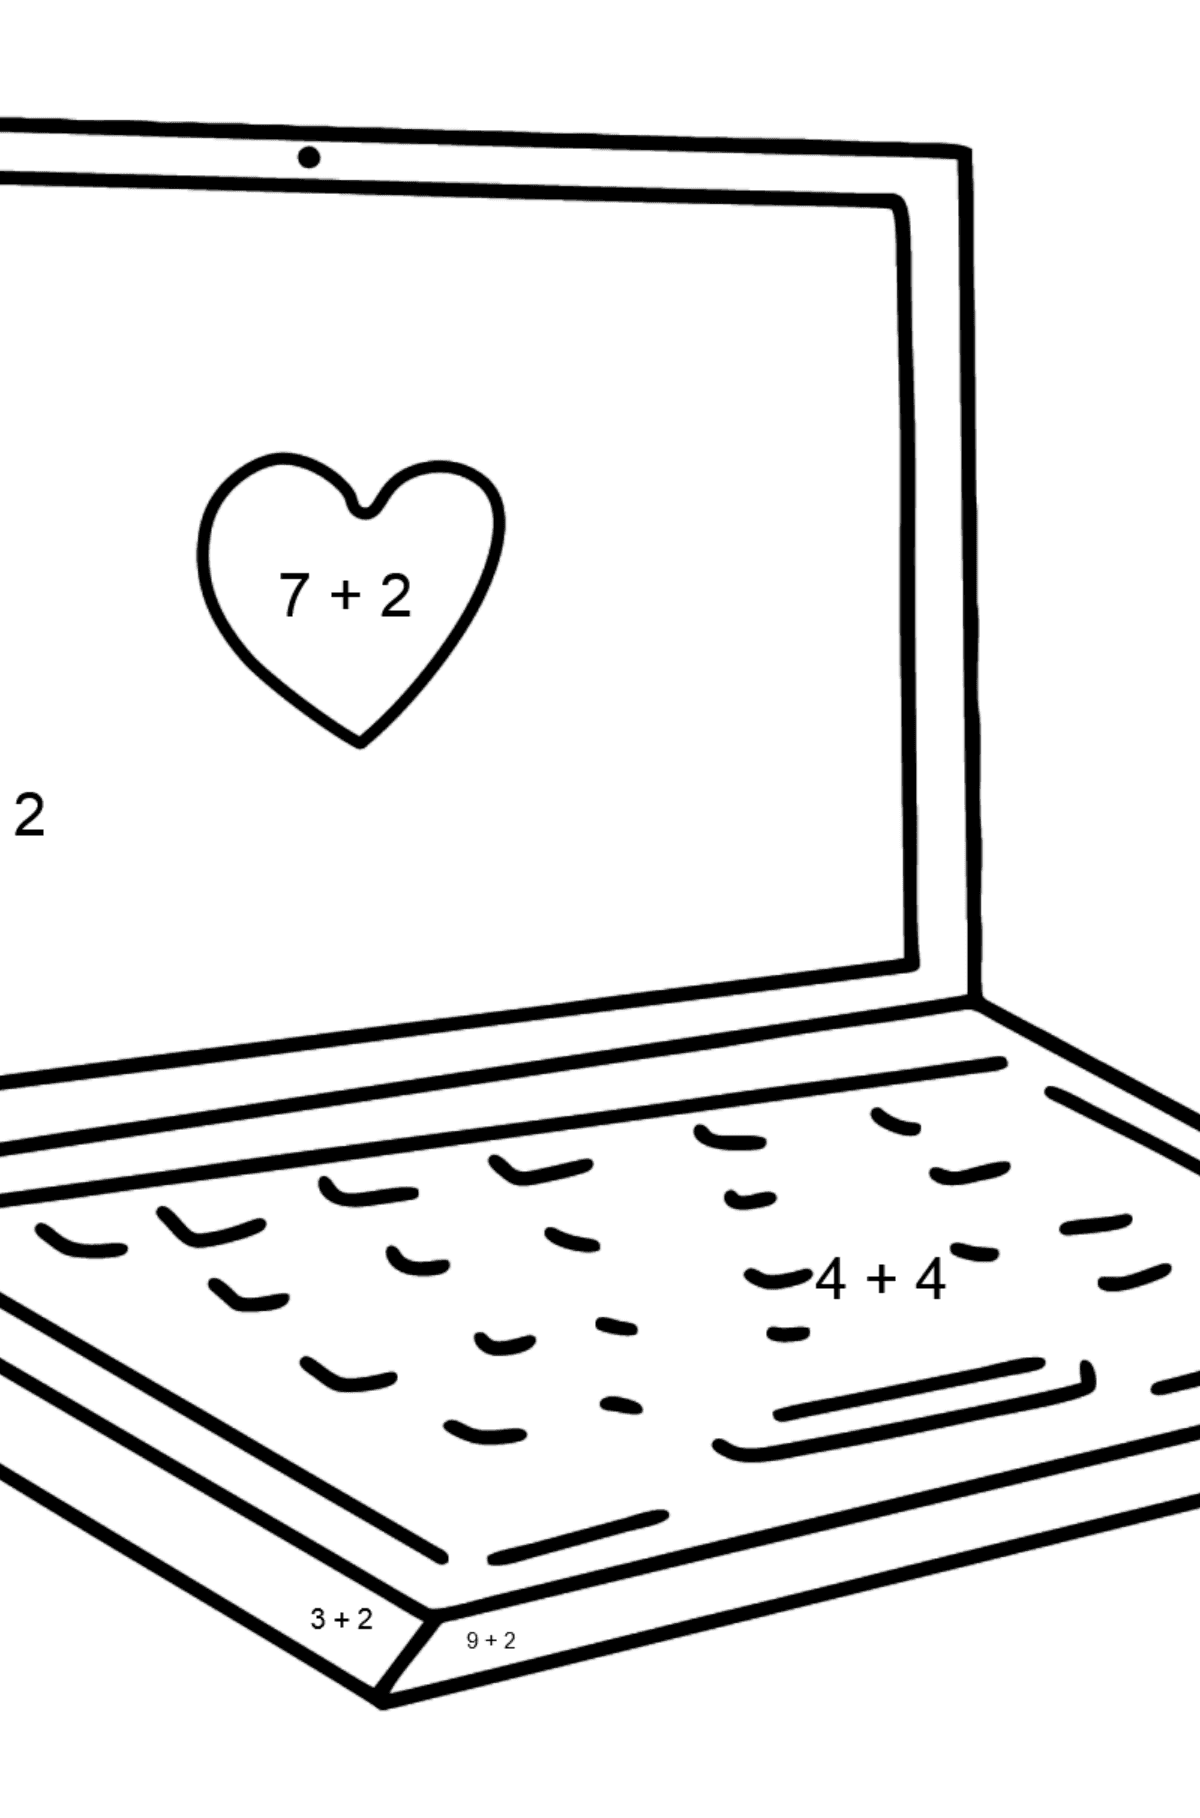 Notebook coloring page - Math Coloring - Addition for Kids